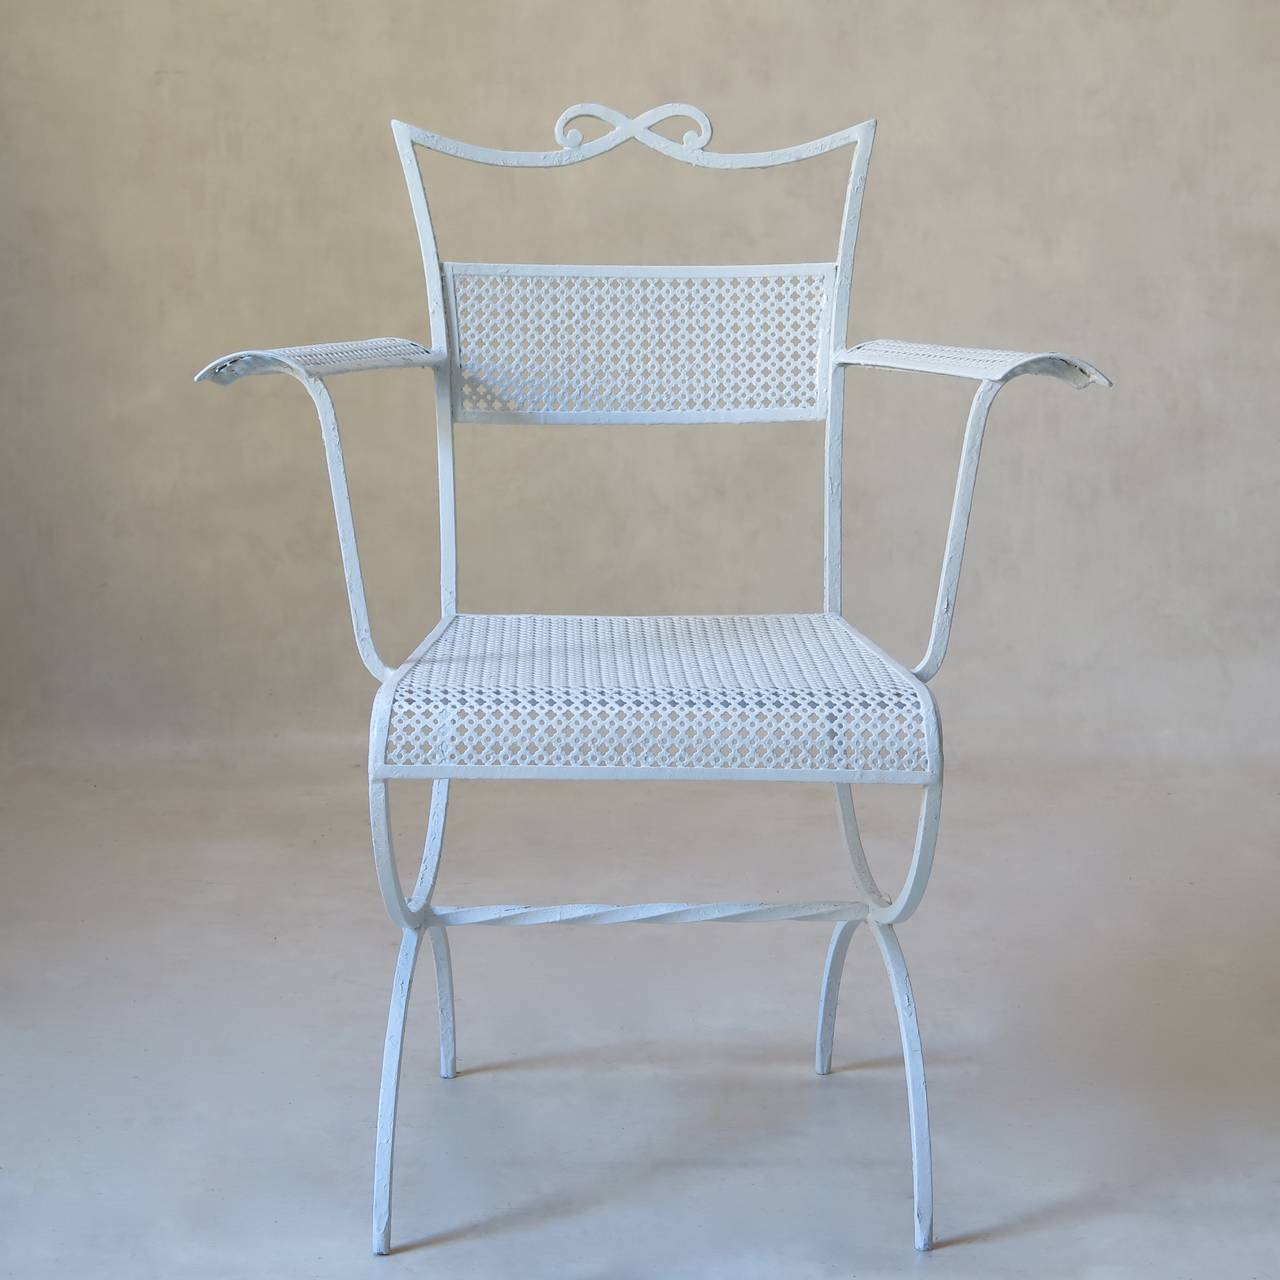 Charming pair of bow-motif wrought iron armchairs by Maison Jansen. Elegantly tapering backs, with a bow on crest rail. Curved armrests and seta edge. Curule-shape bases, joined by a twisted iron stretcher. The seats, backs and armrests are made out